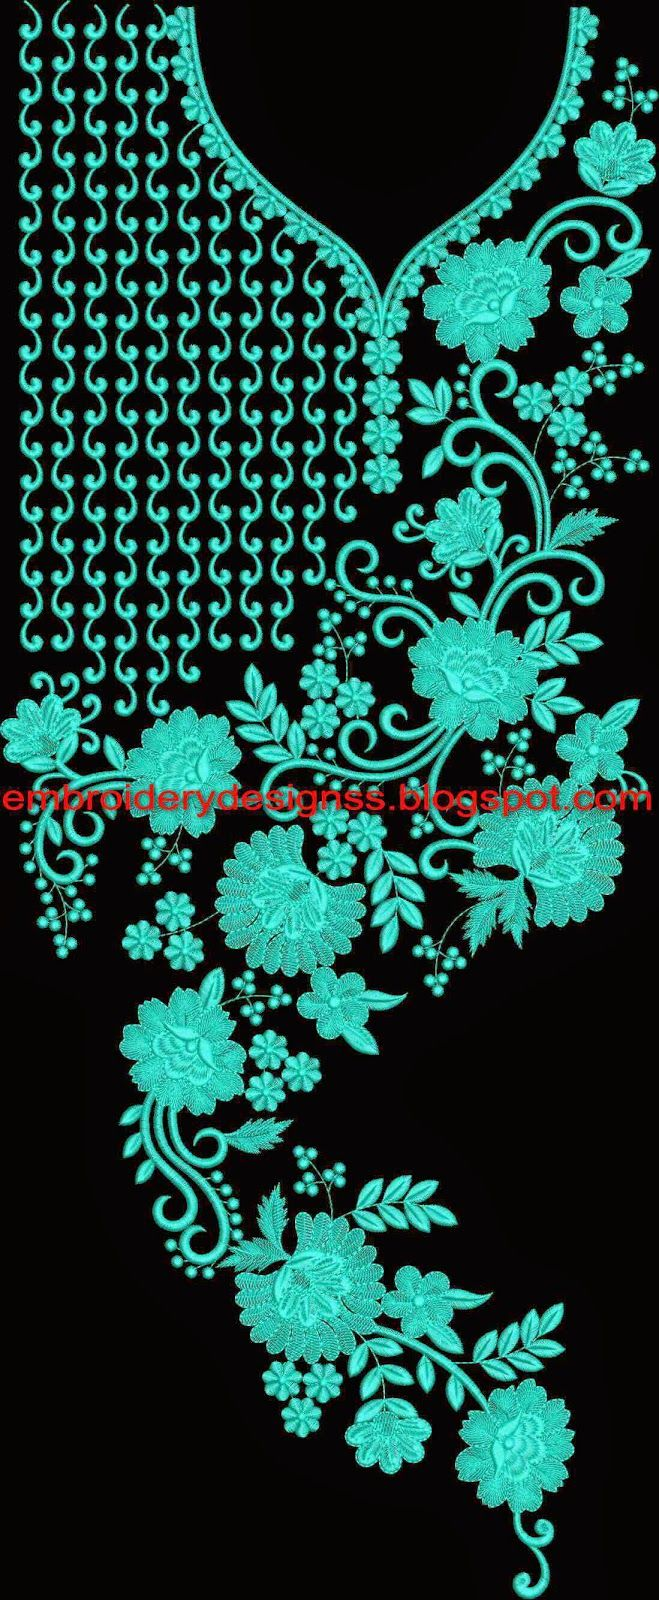 Embroidery Designs, Embroidery Designs, Embroidery Designs Free, New Embroidery Designs, Wilcom Embroidery Designs, Embroidery Designs C...